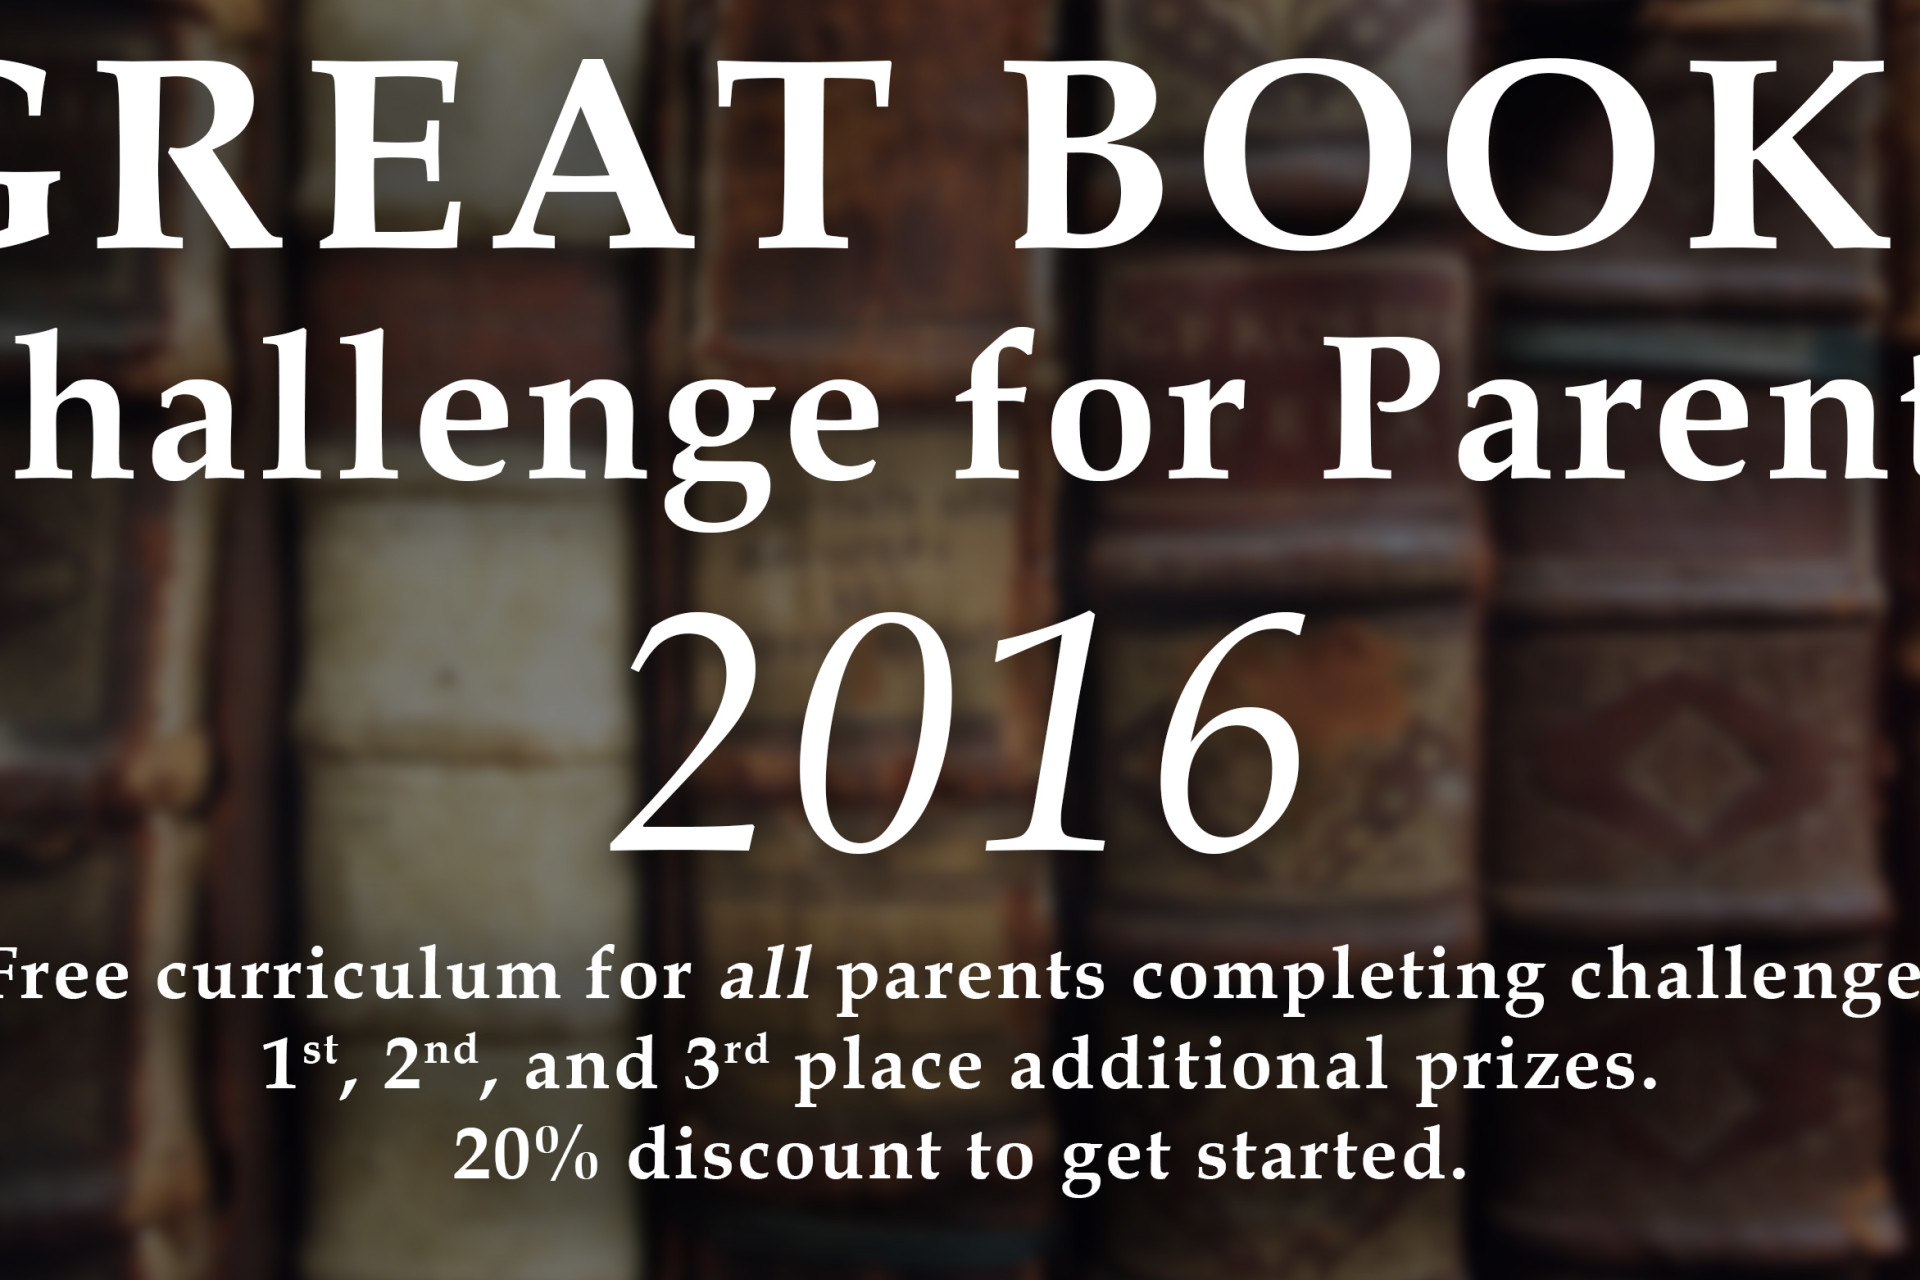 Great Books Challenge for Parents 2016